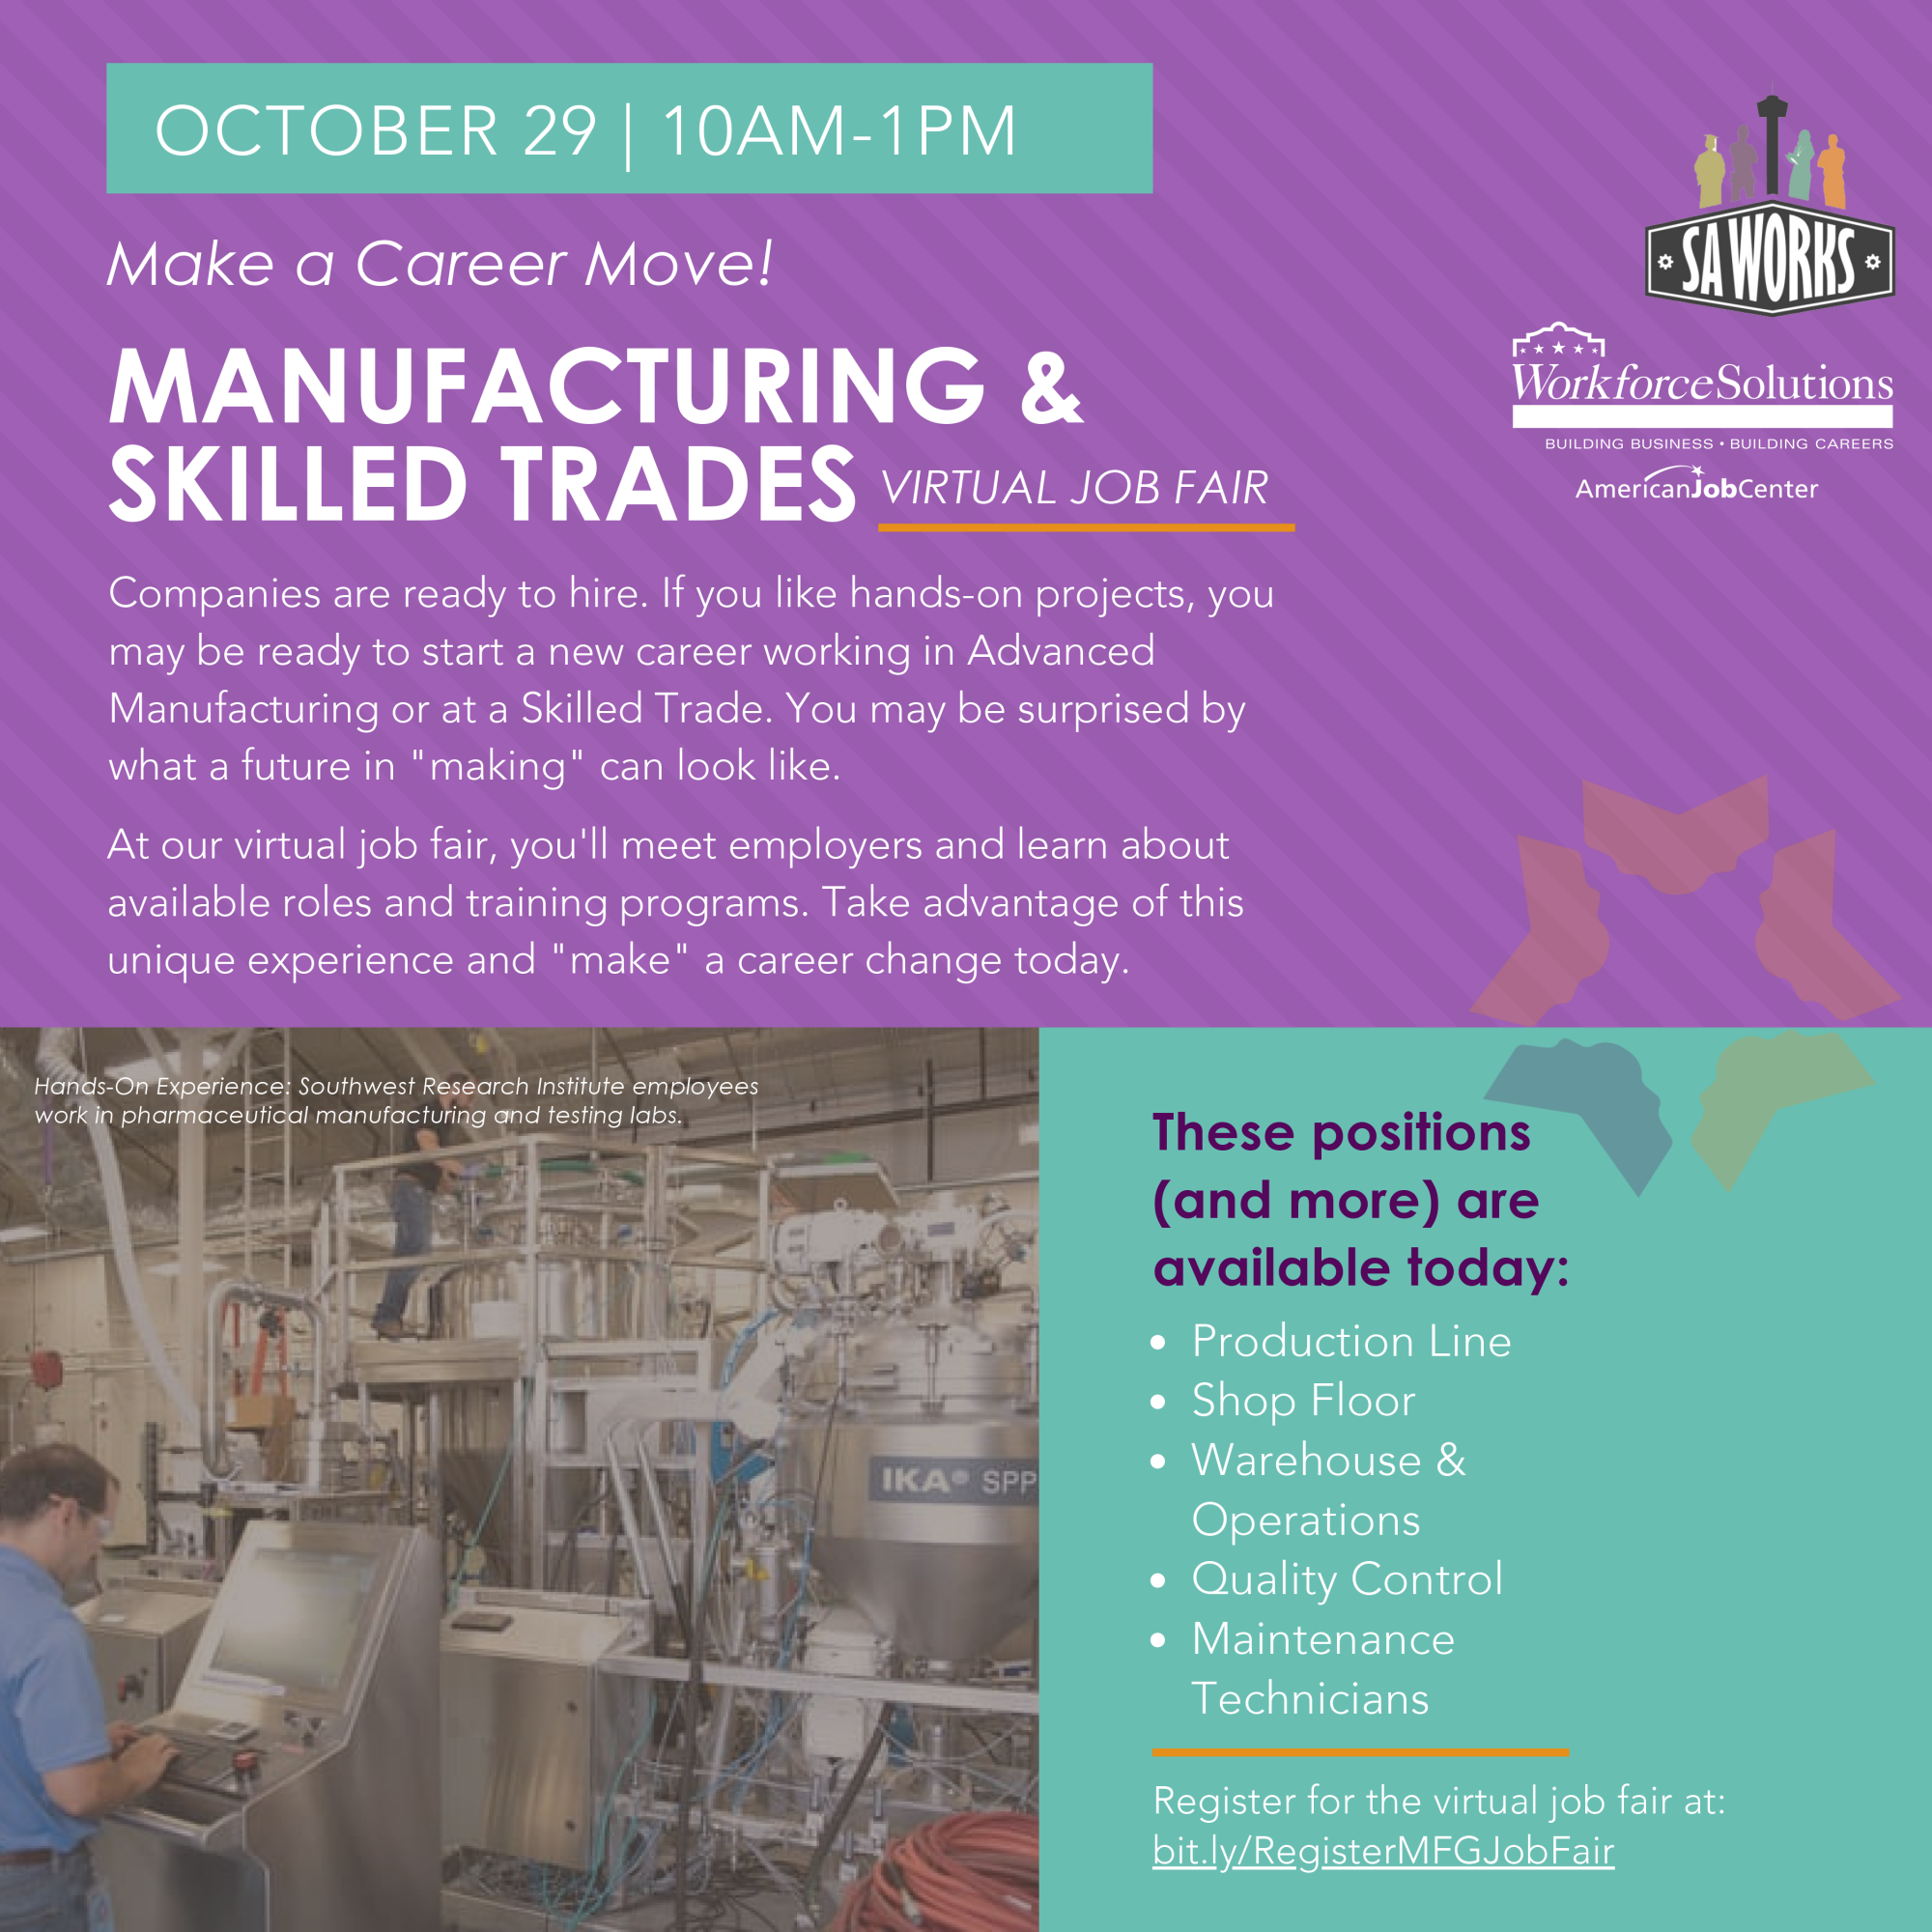 Flyer for Manufacturing & Skilled Trades Job Fair from 10 a.m. to 1 p.m. October 29, 2020 in partnership with SA Works